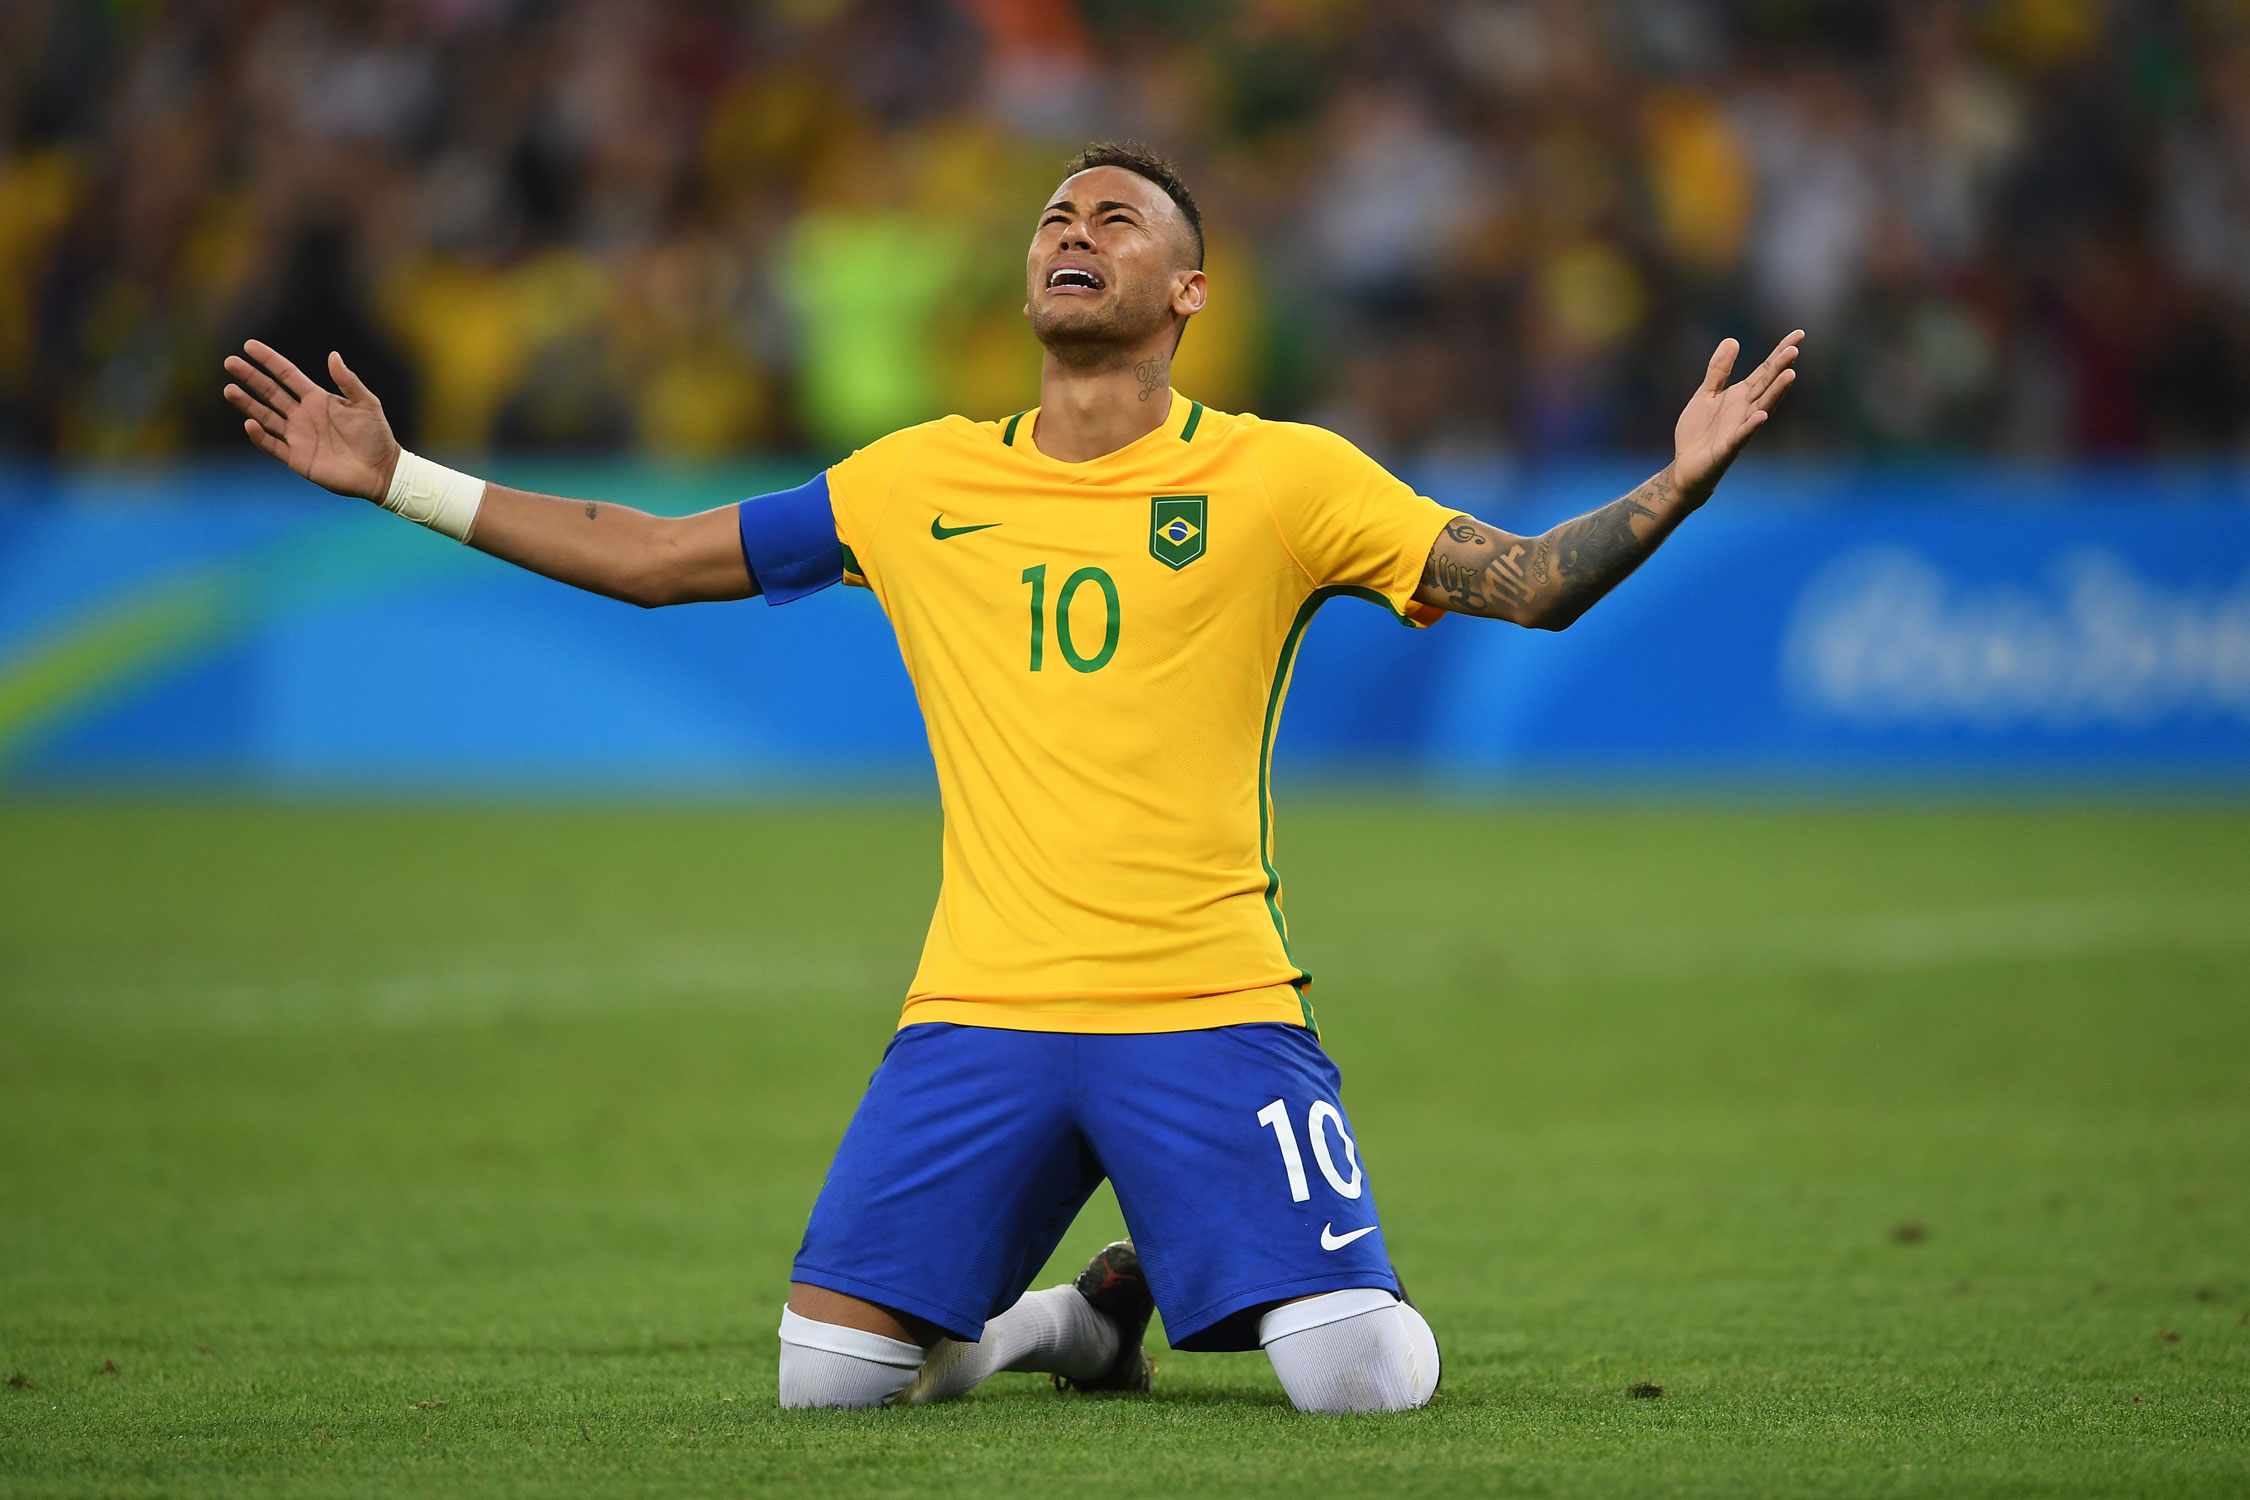 Neymar collapses to the ground overcome with emotion after his decisive penalty kick clinched Brazil's first Olympic gold medal in soccer.